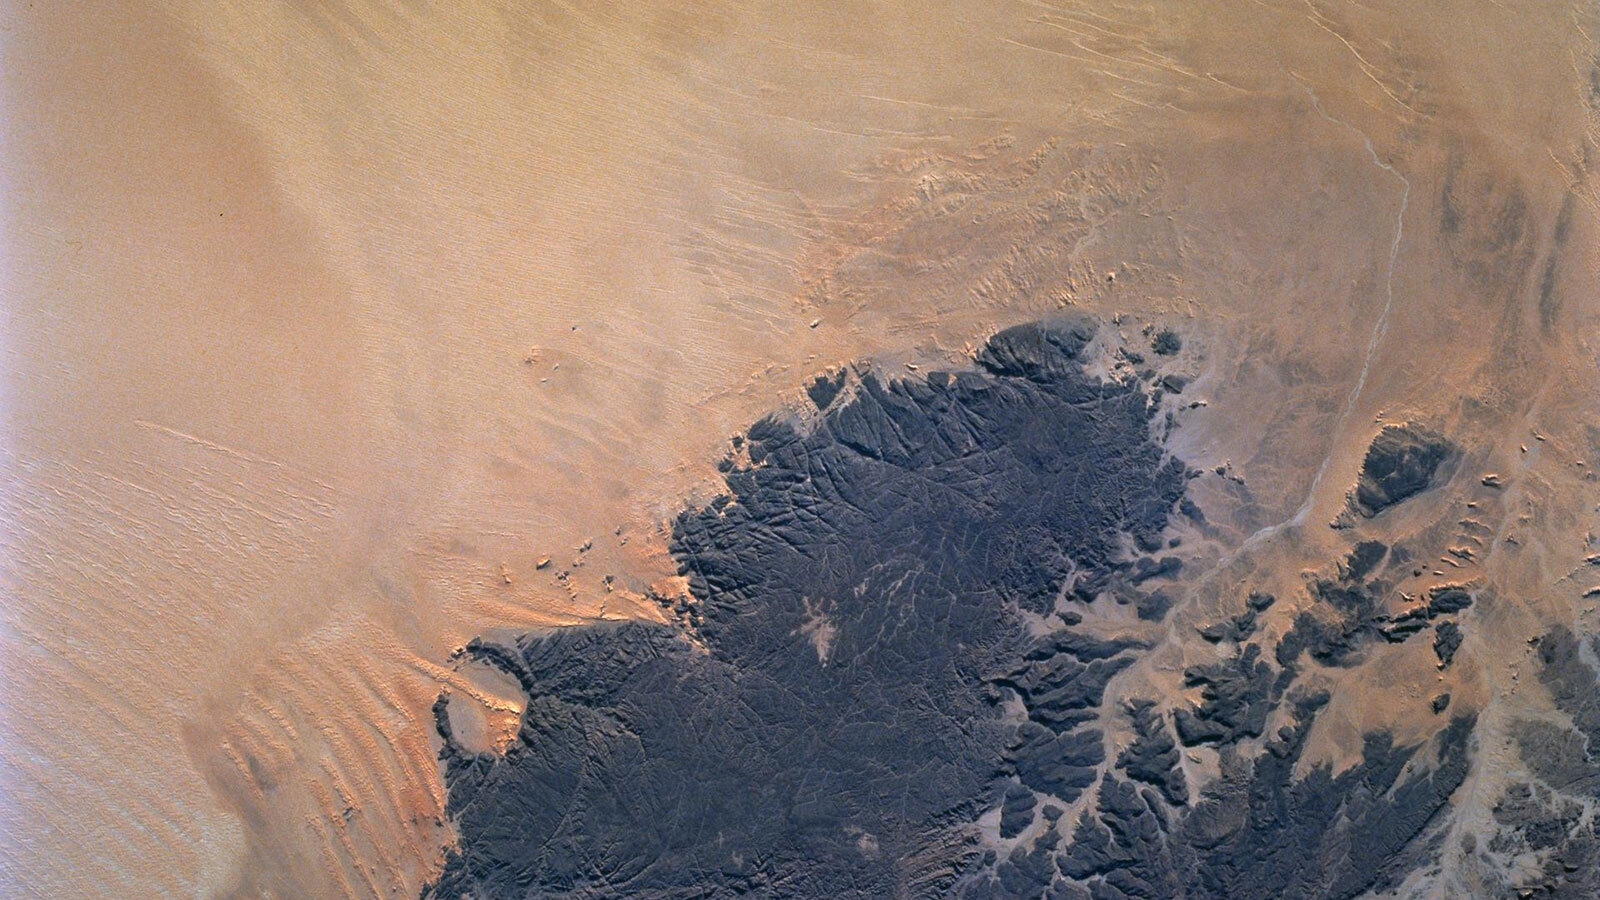 Deserts like the Sahara harbor freshwater aquifers that can be affected by Earth's changing climate. The OASIS study project seeks to establish a mission that would find and examine those aquifers.